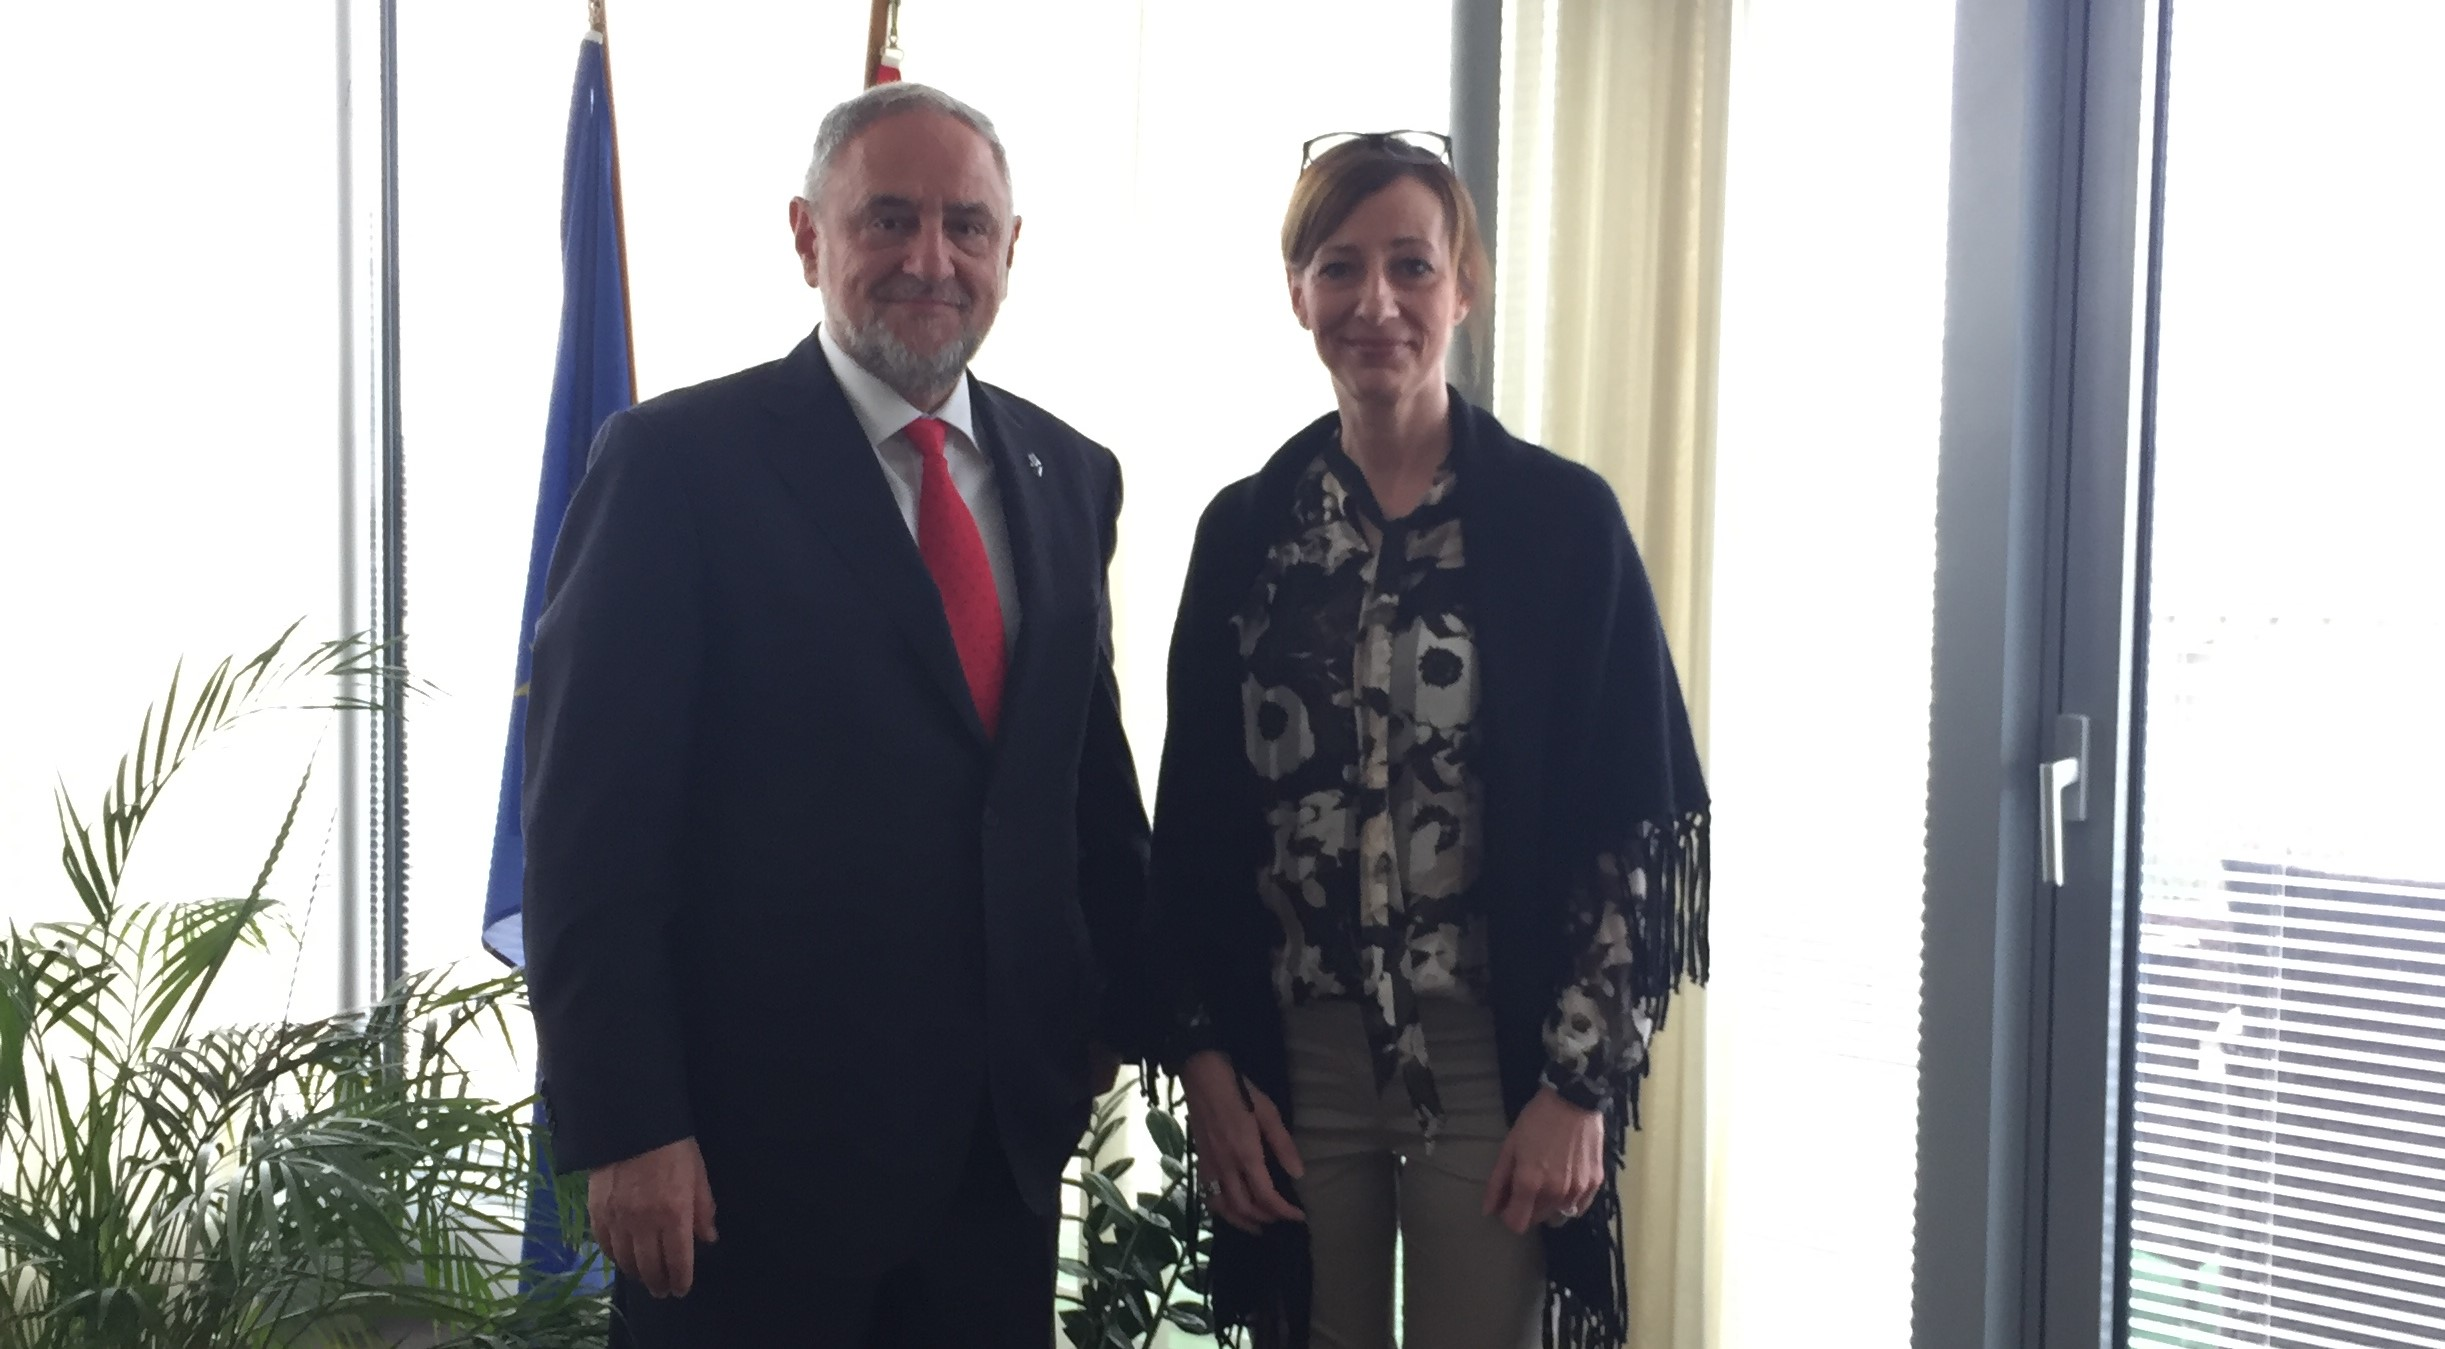 \  WJC CEO and Executive Vice President Robert Singer meeting with Hungarian Ambassador Zsuzsanna Horváth in Geneva in May 2018. (c) World Jewish Congress.